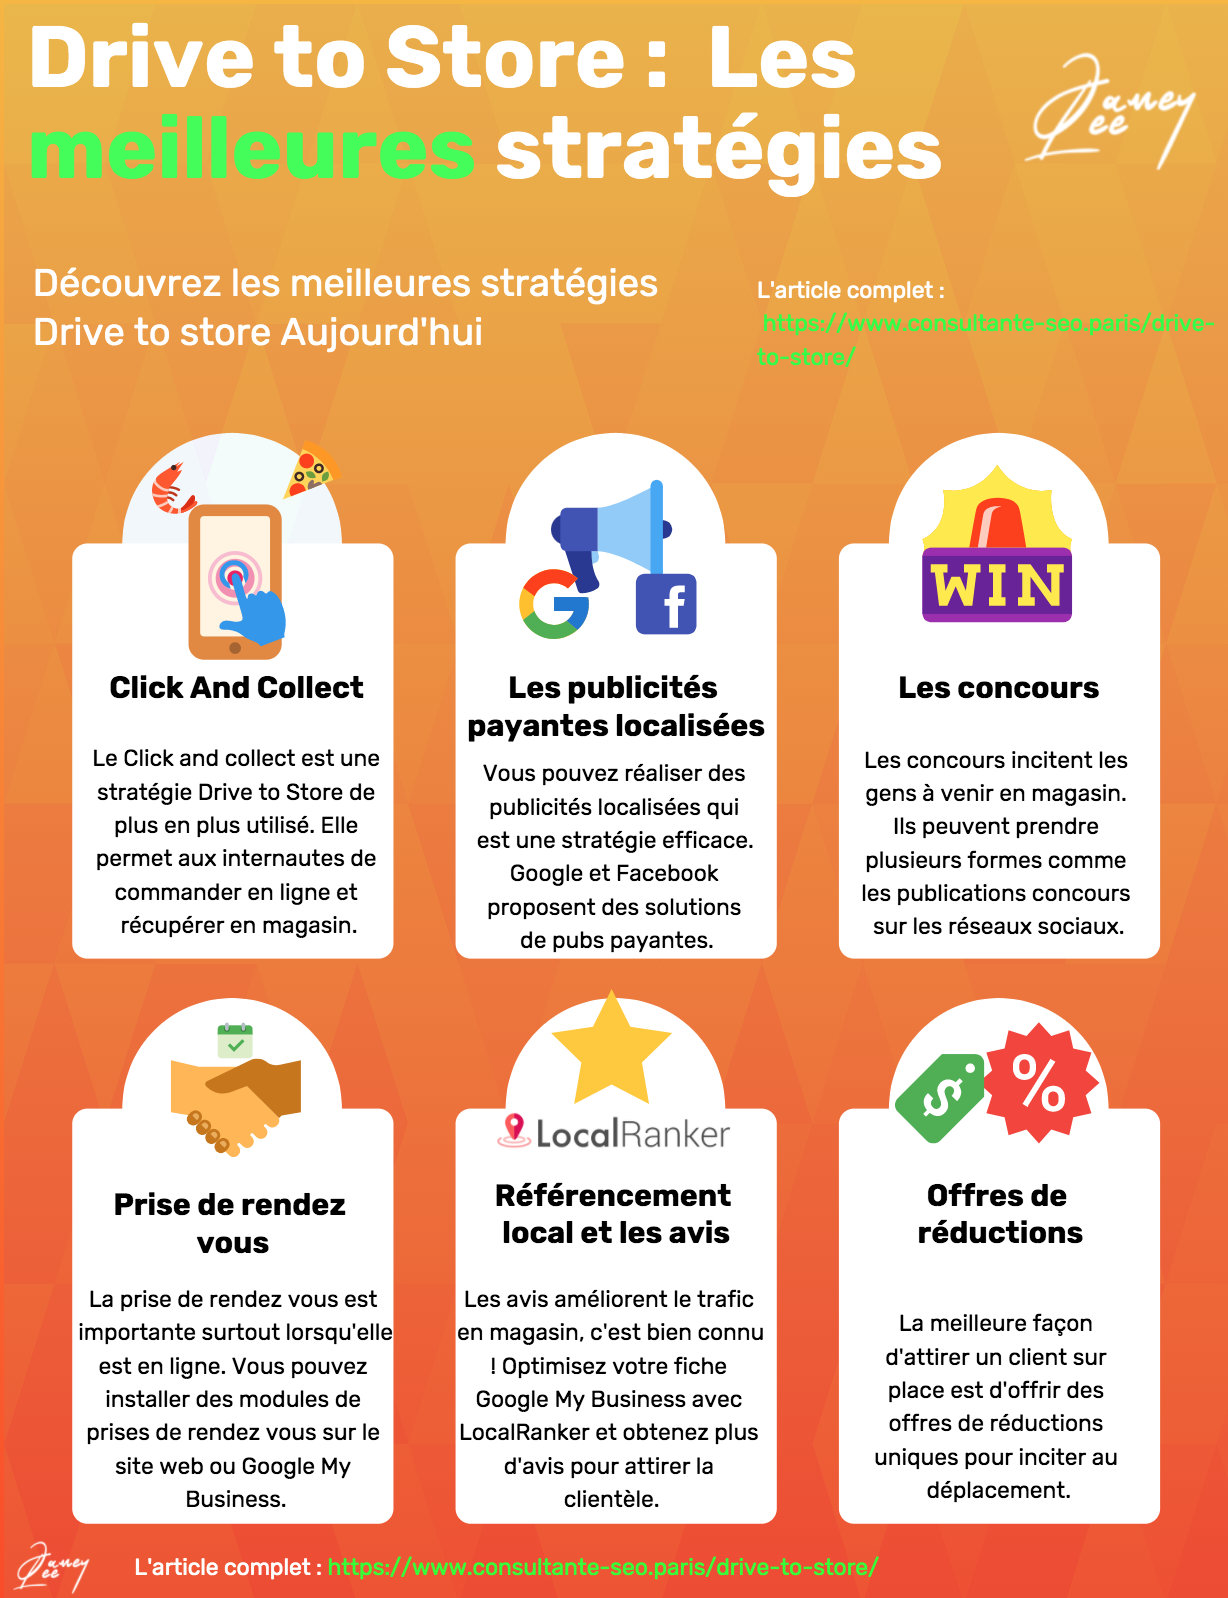 Drive to store stratégies infographie